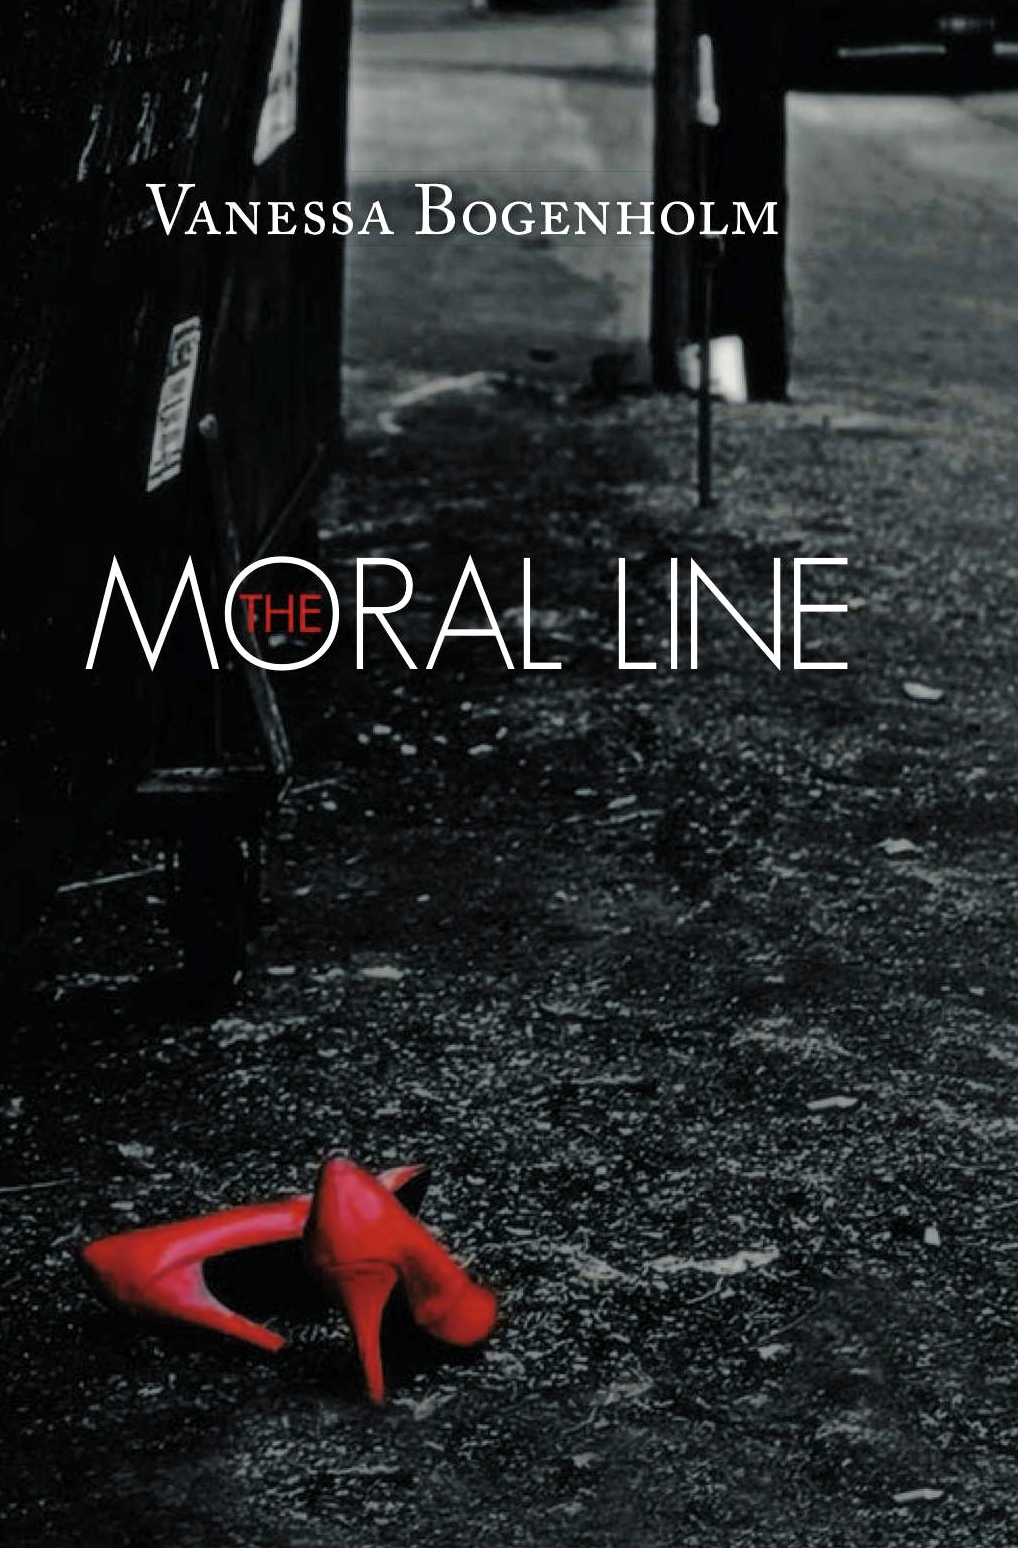 THE MORAL LINE BOOK COVER